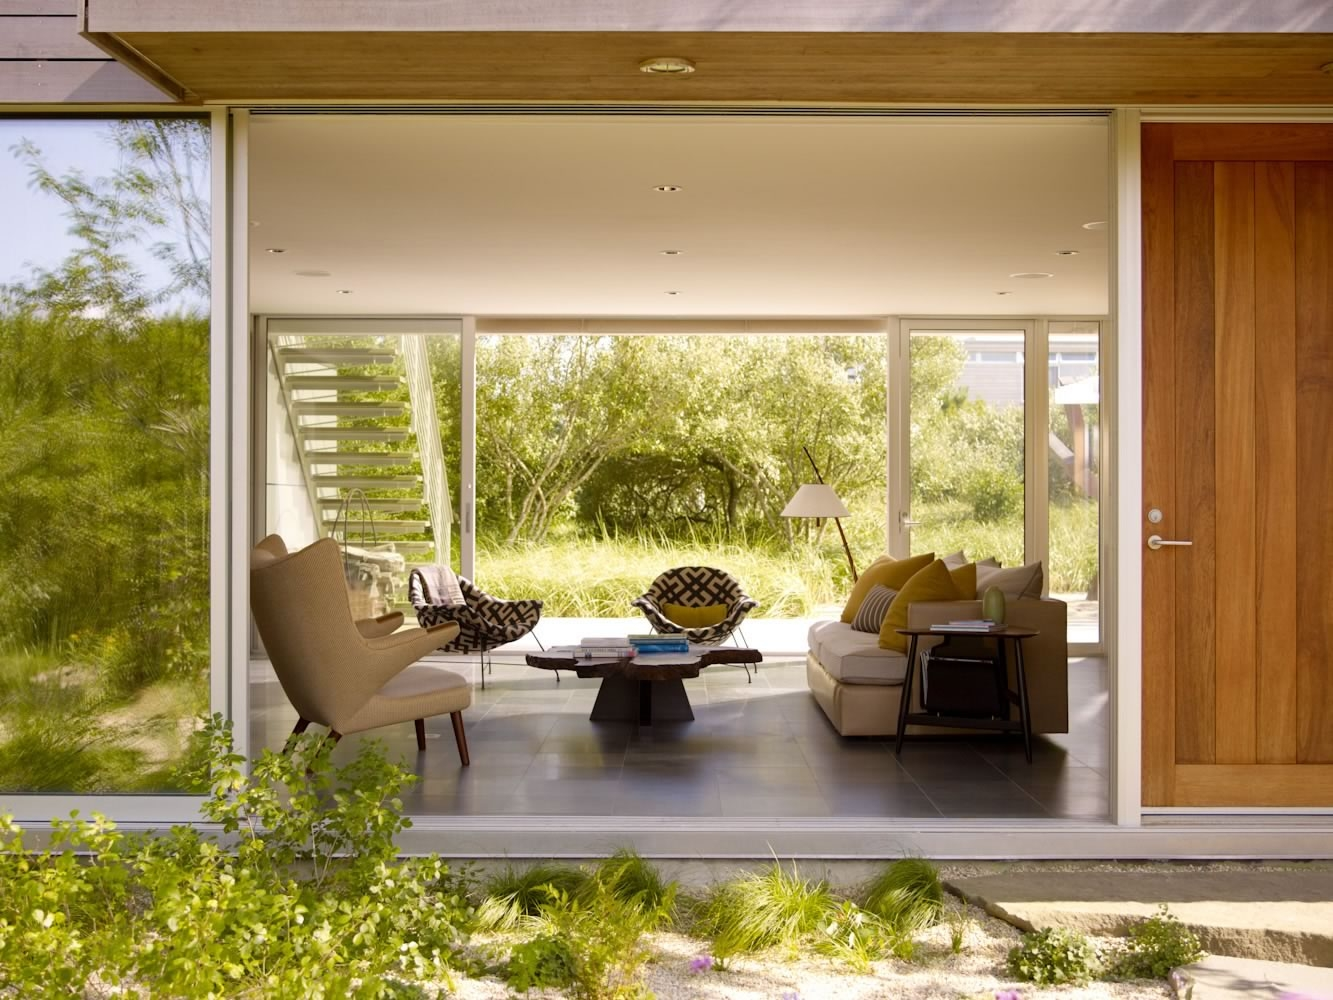 Living Room Spaces Stelle Lomont Rouhani Architects Award Winning Modern Architect